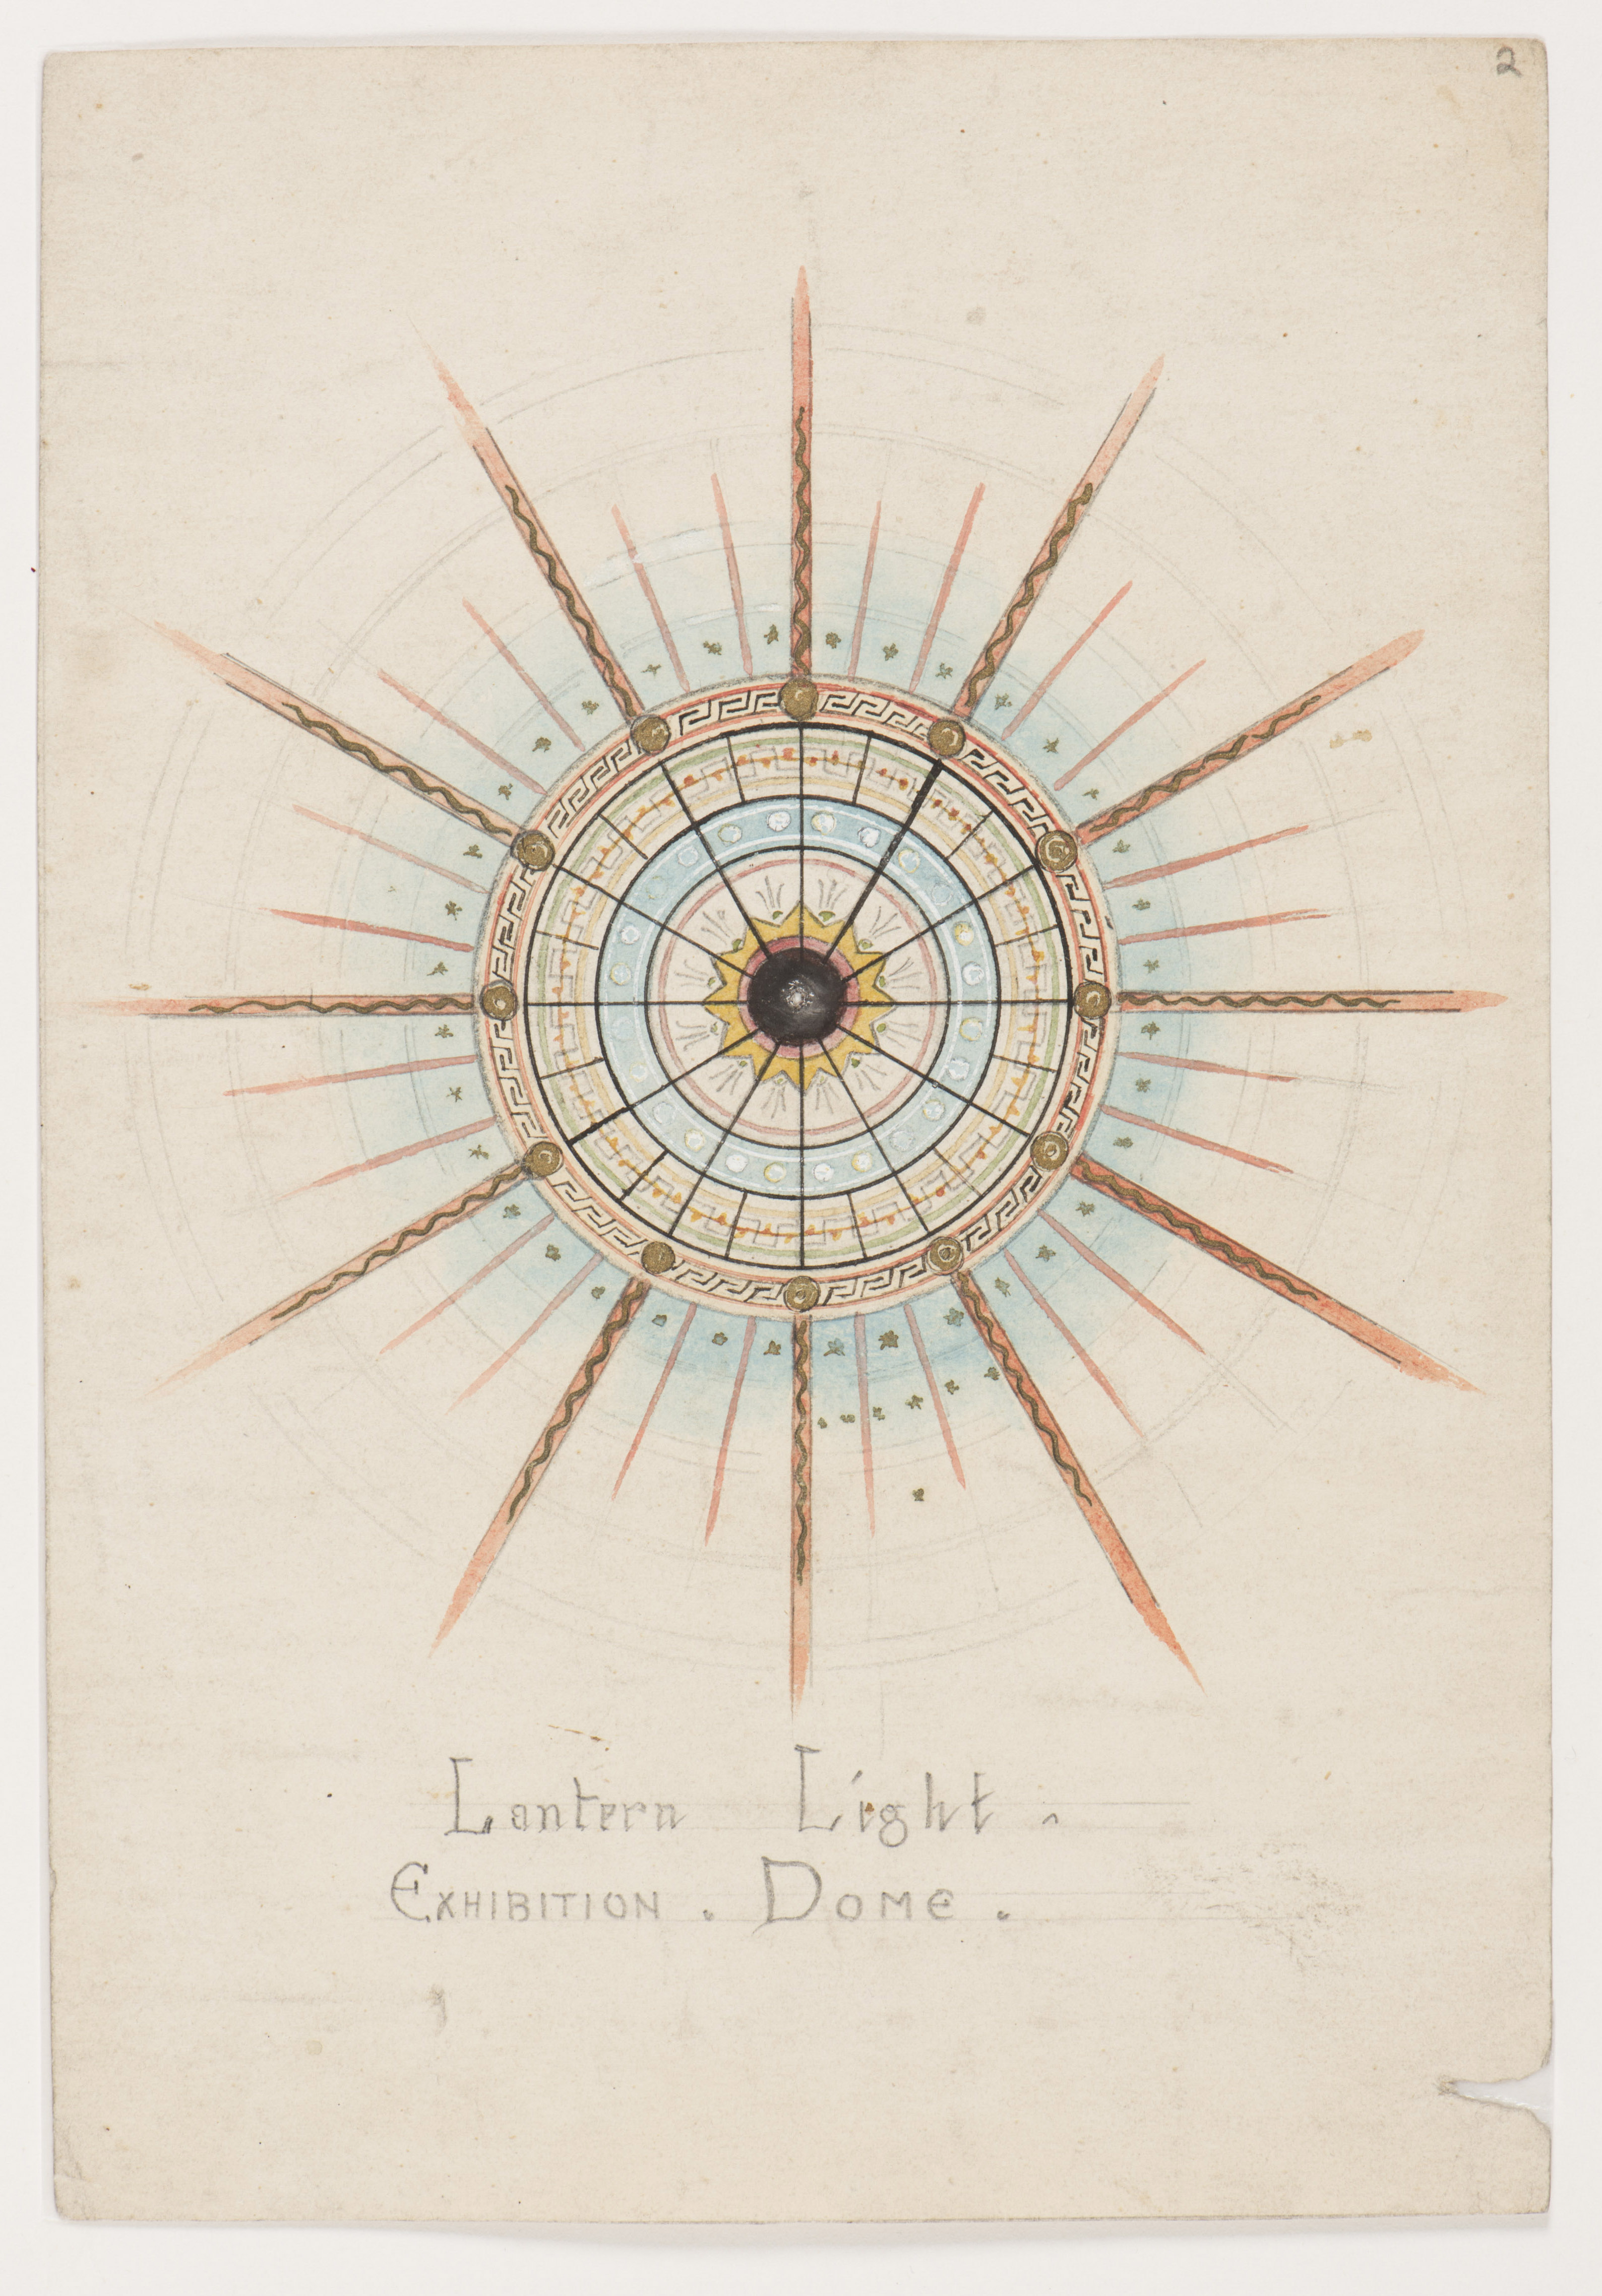 Pencil and watercolour design for stained glass window, circular shape,  lines radiating from centre